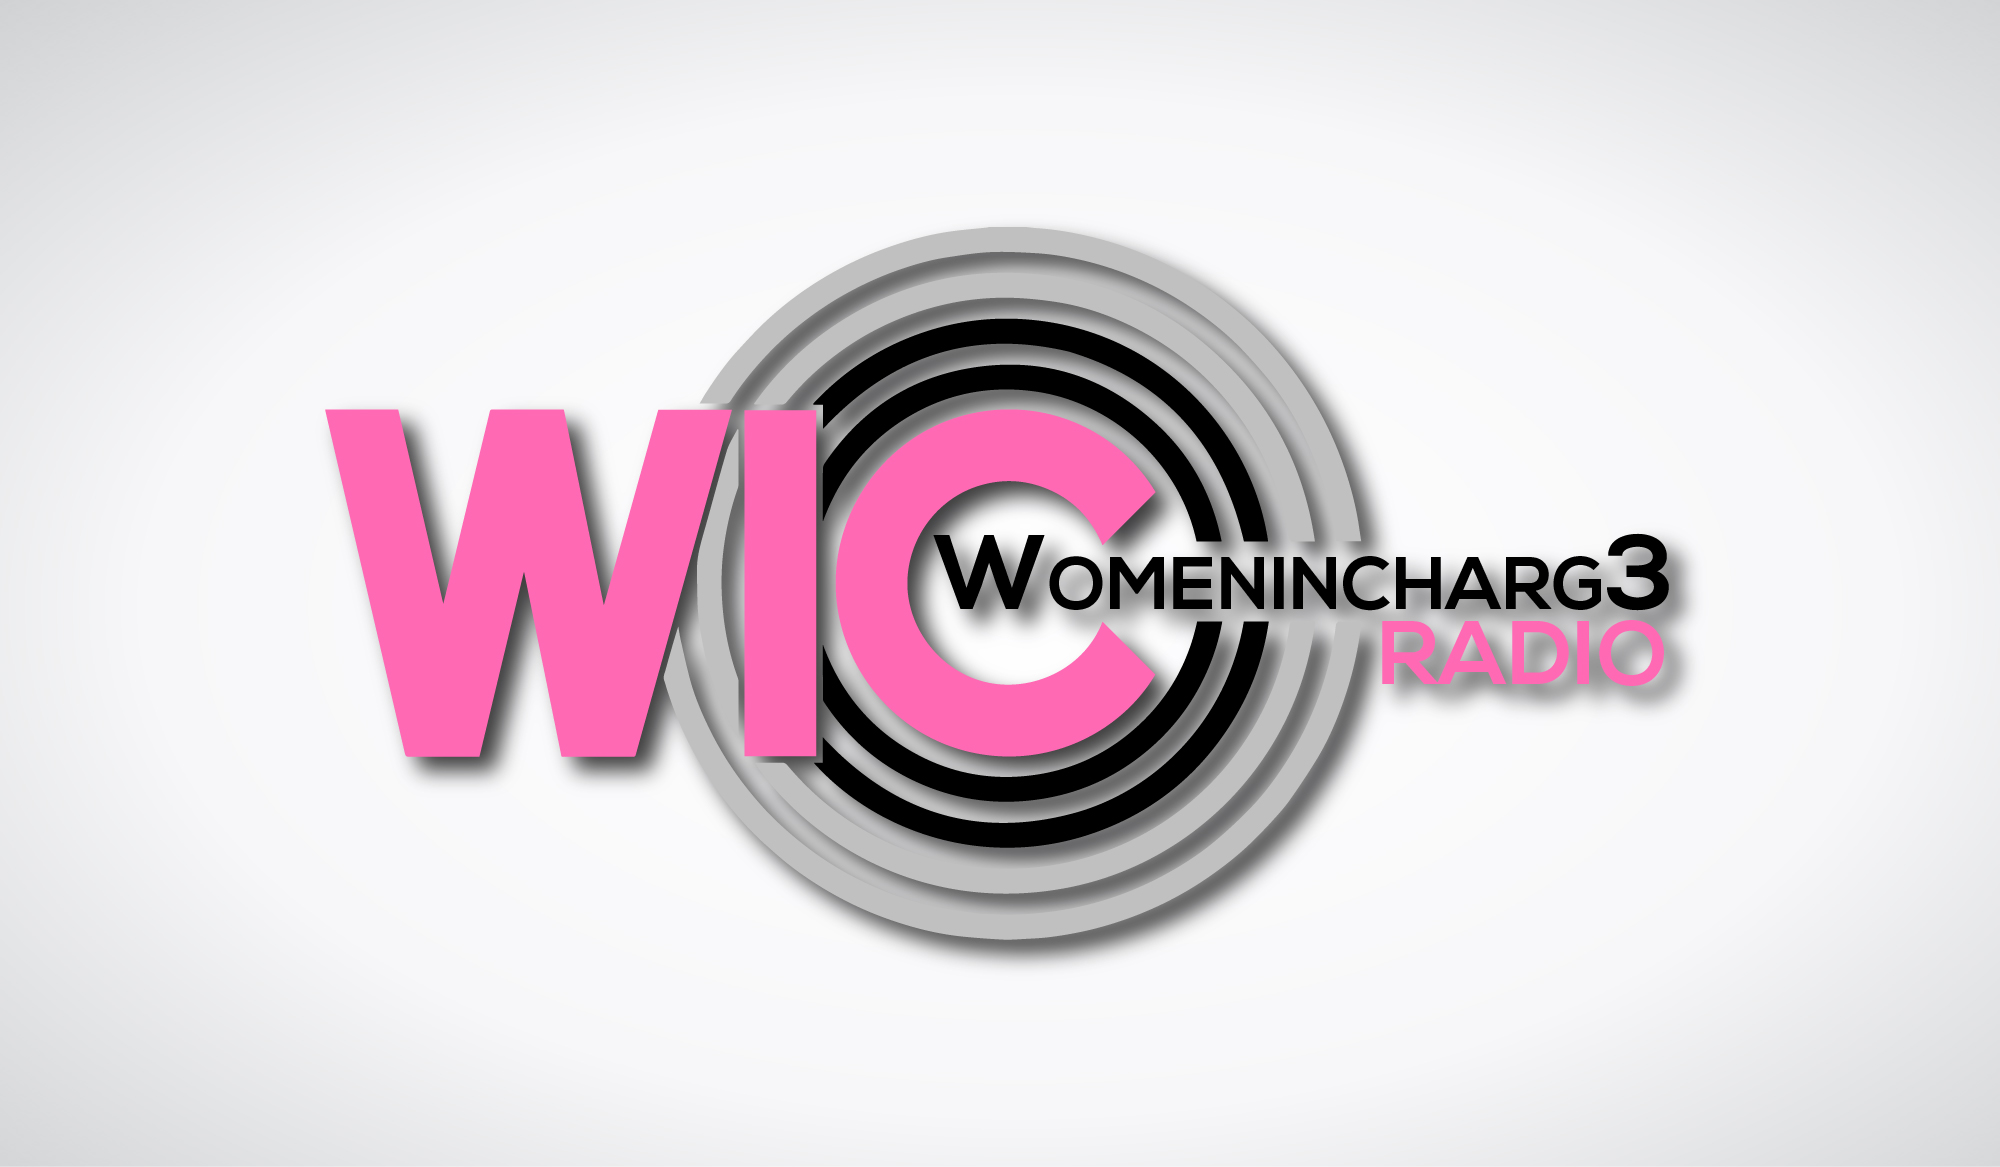 play Your Music on Womenincharg3 Radio